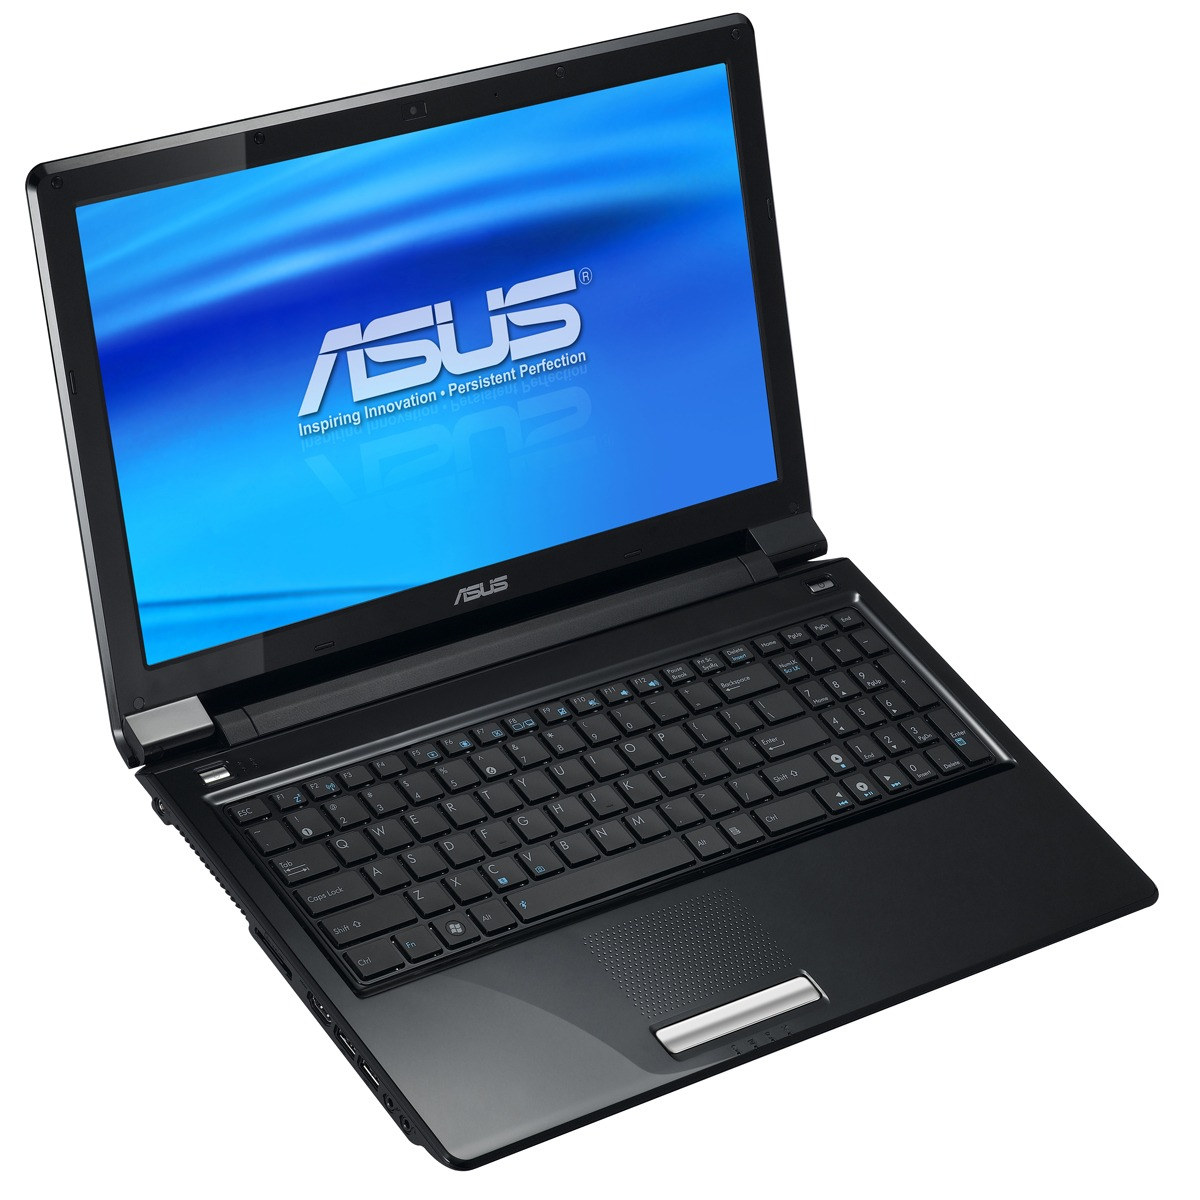 "PC portable ASUS UL50VG-XX031V ASUS UL50VG-XX031V - Intel Core 2 Duo SU7300 4 Go 500 Go 15.6"" TFT Graveur DVD Super Multi DL Wi-Fi N/Bluetooth Webcam Windows 7 Premium (garantie constructeur 2 ans)"